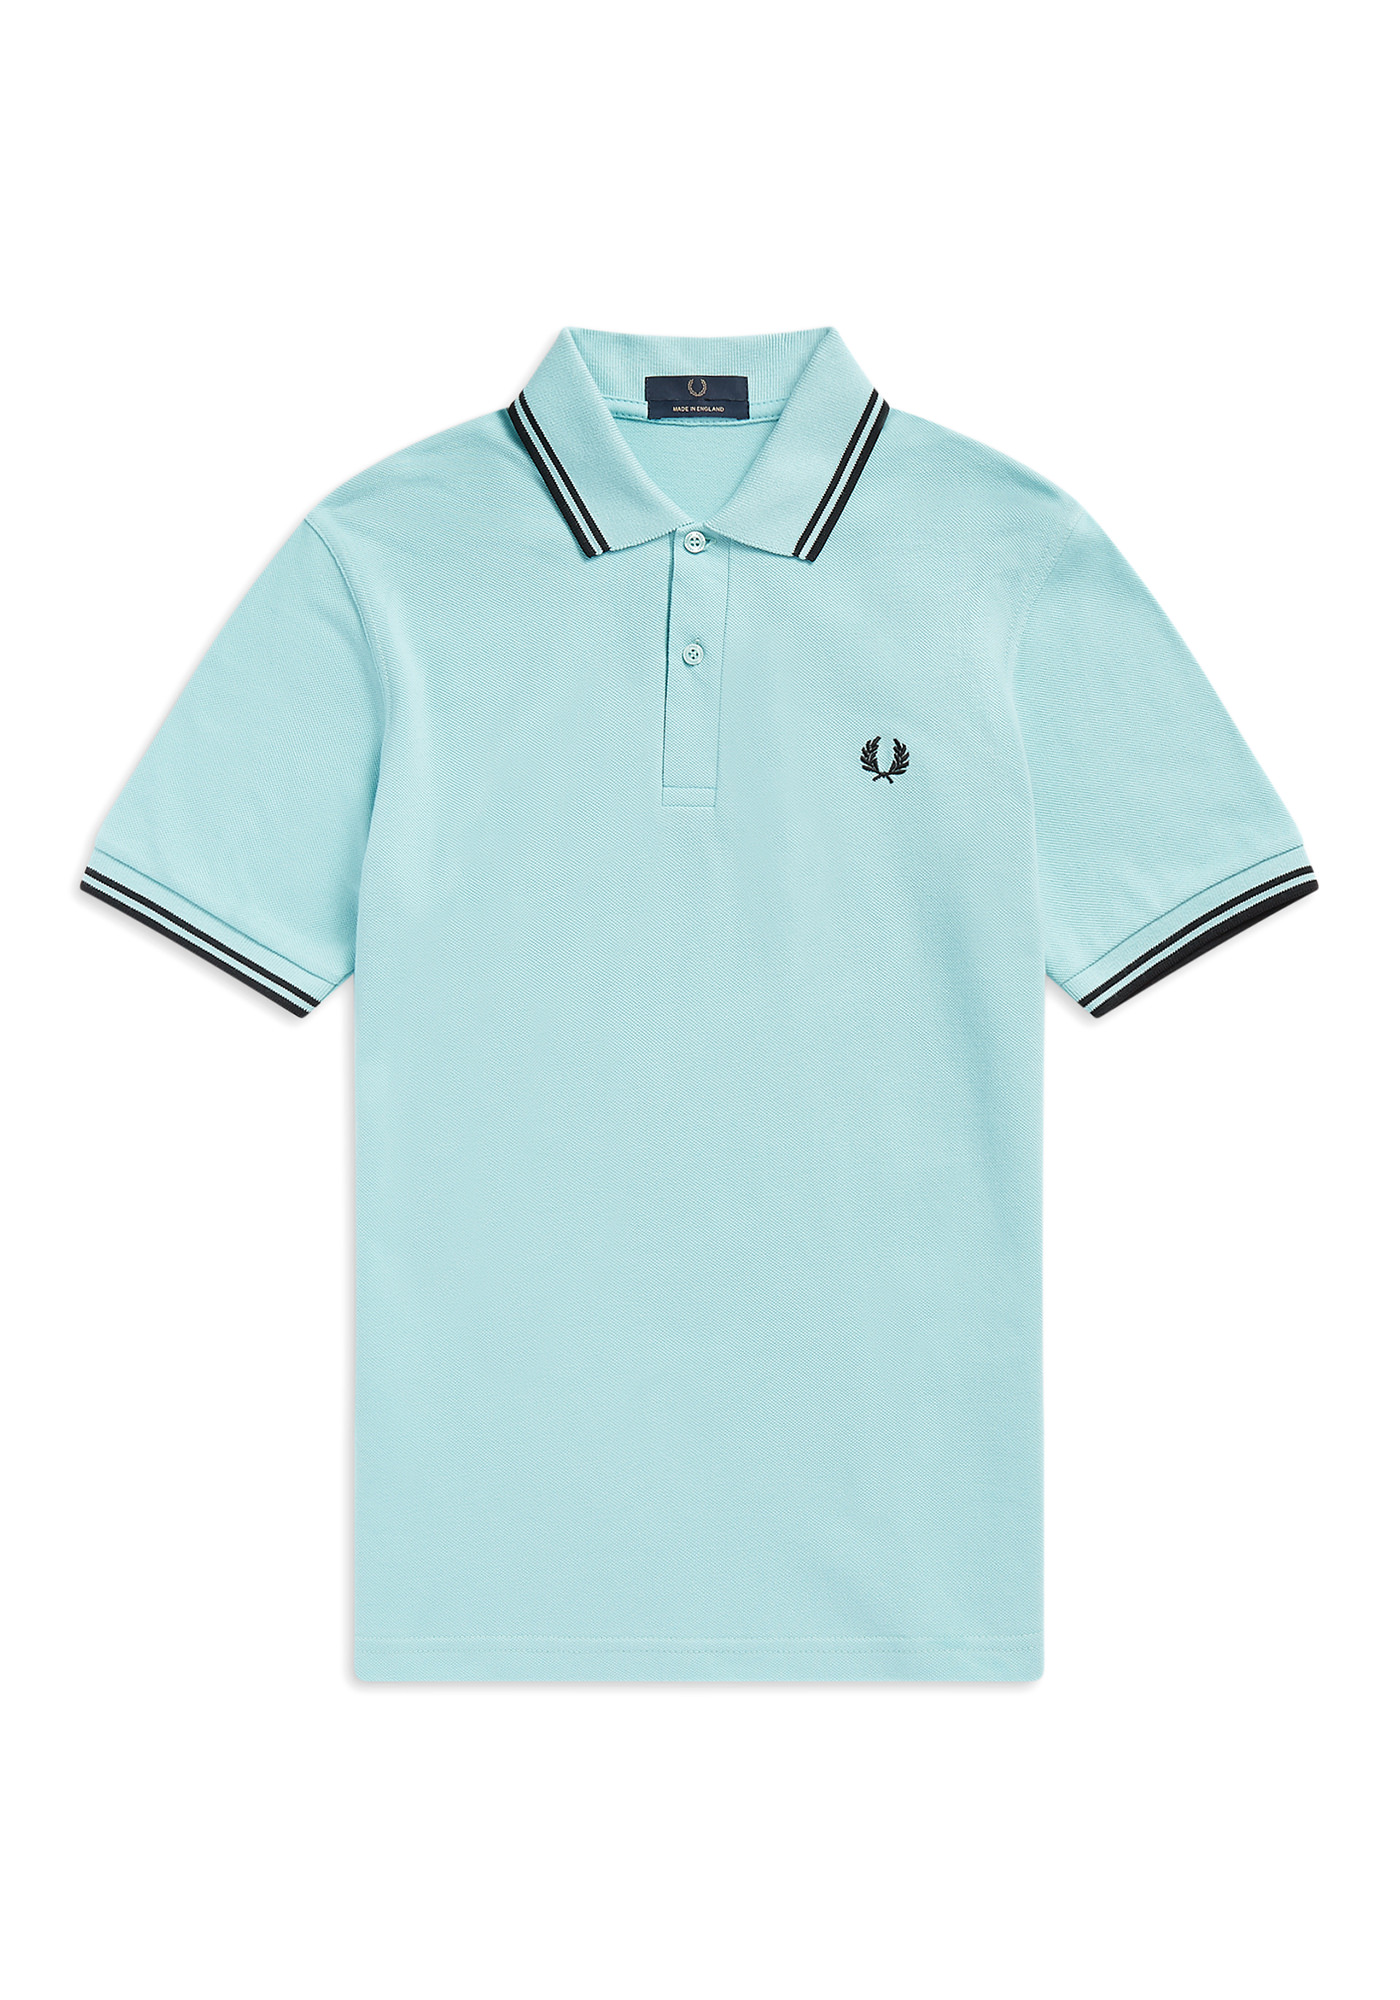 8d2544abf6d06e THE ORIGINAL TWIN TIPPED FRED PERRY SHIRT